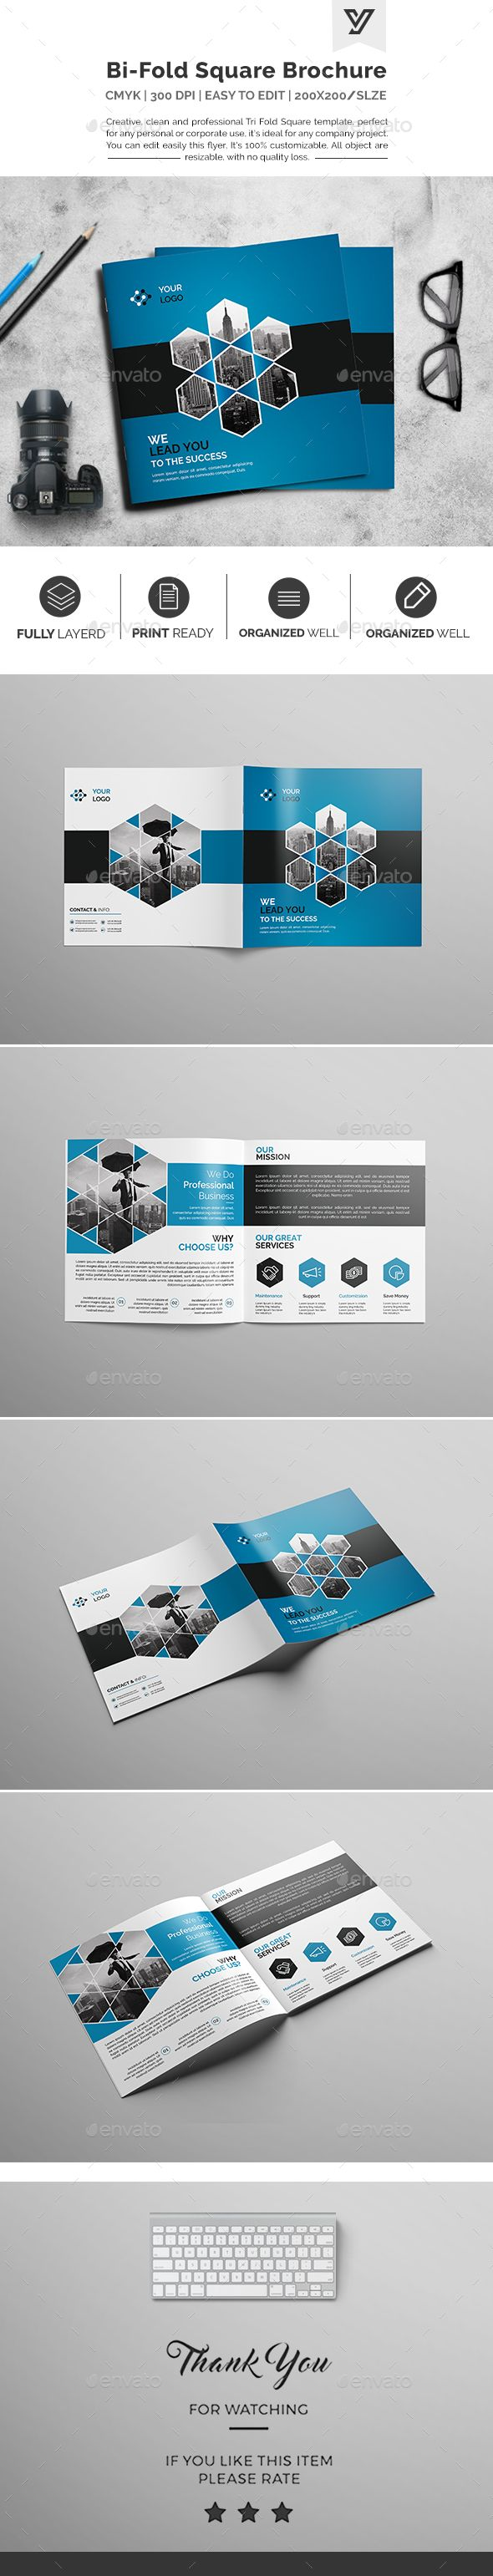 973 best CATALOQUE images on Pinterest   Page layout, Brochures ...